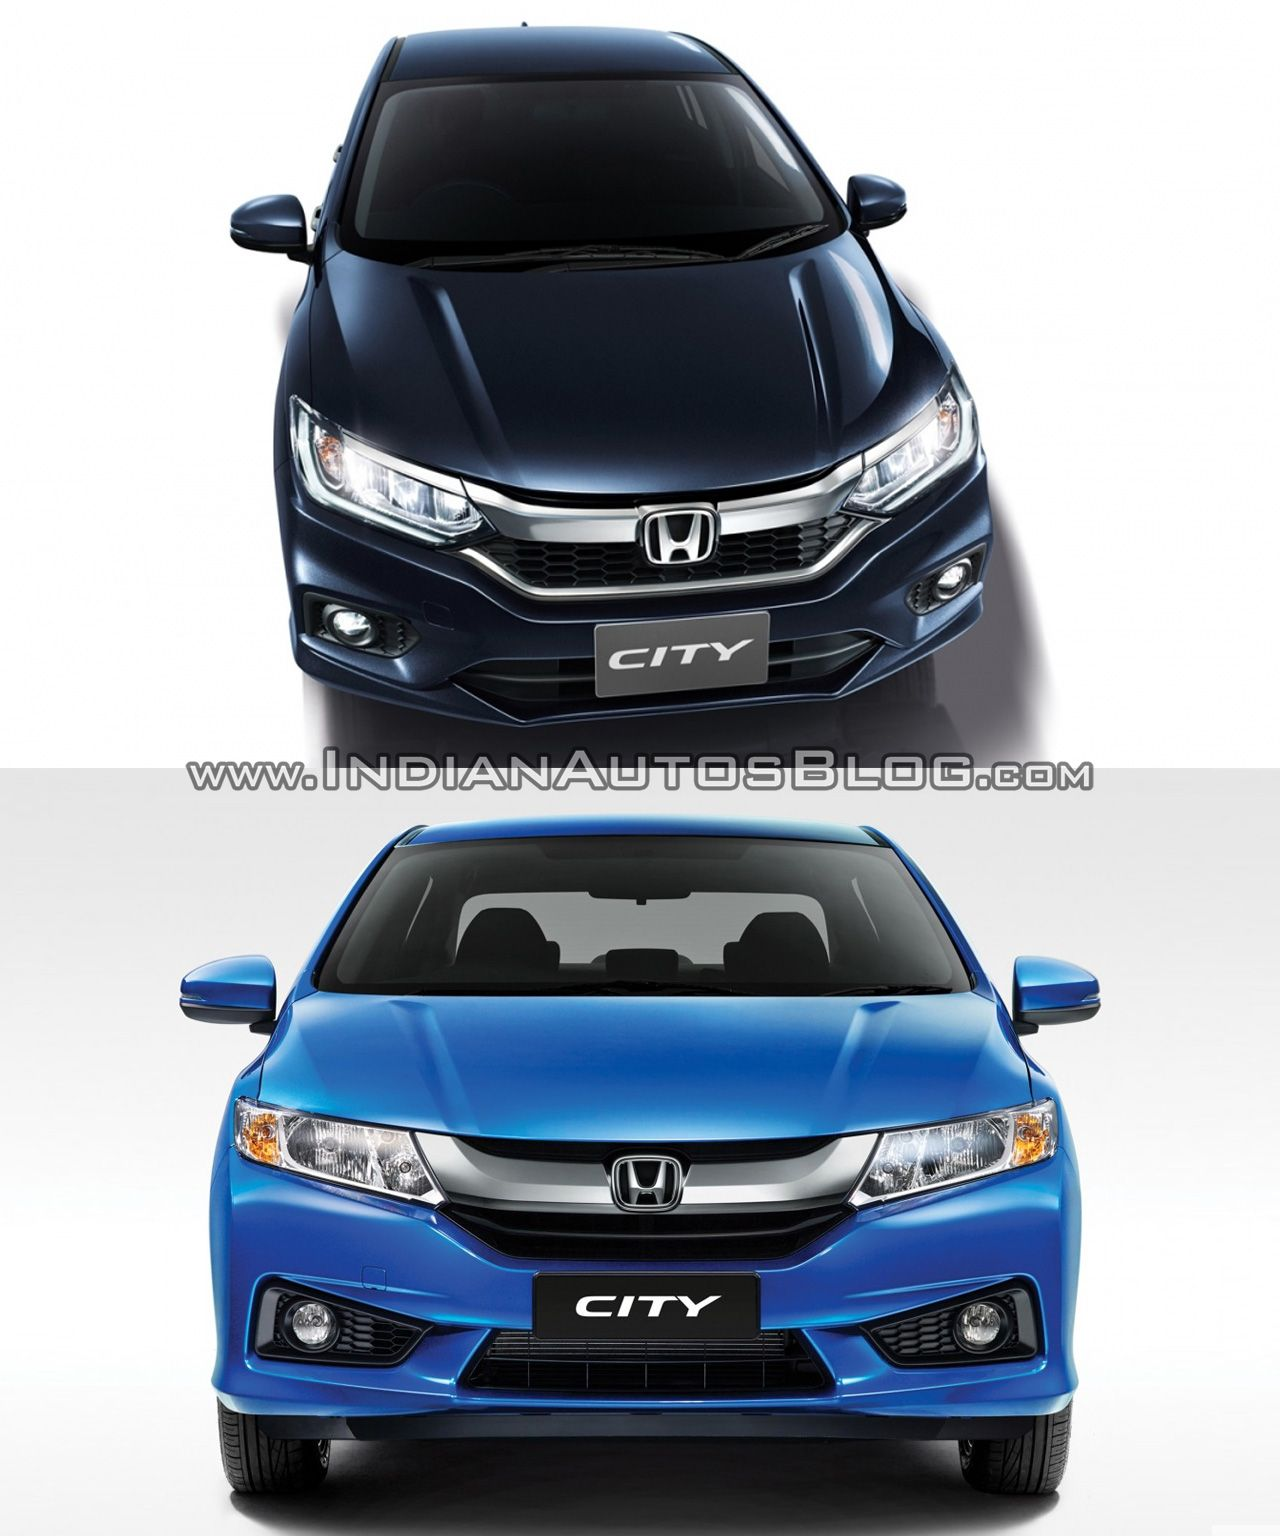 2017 Honda City Vs. 2014 Honda City   Old Vs. New